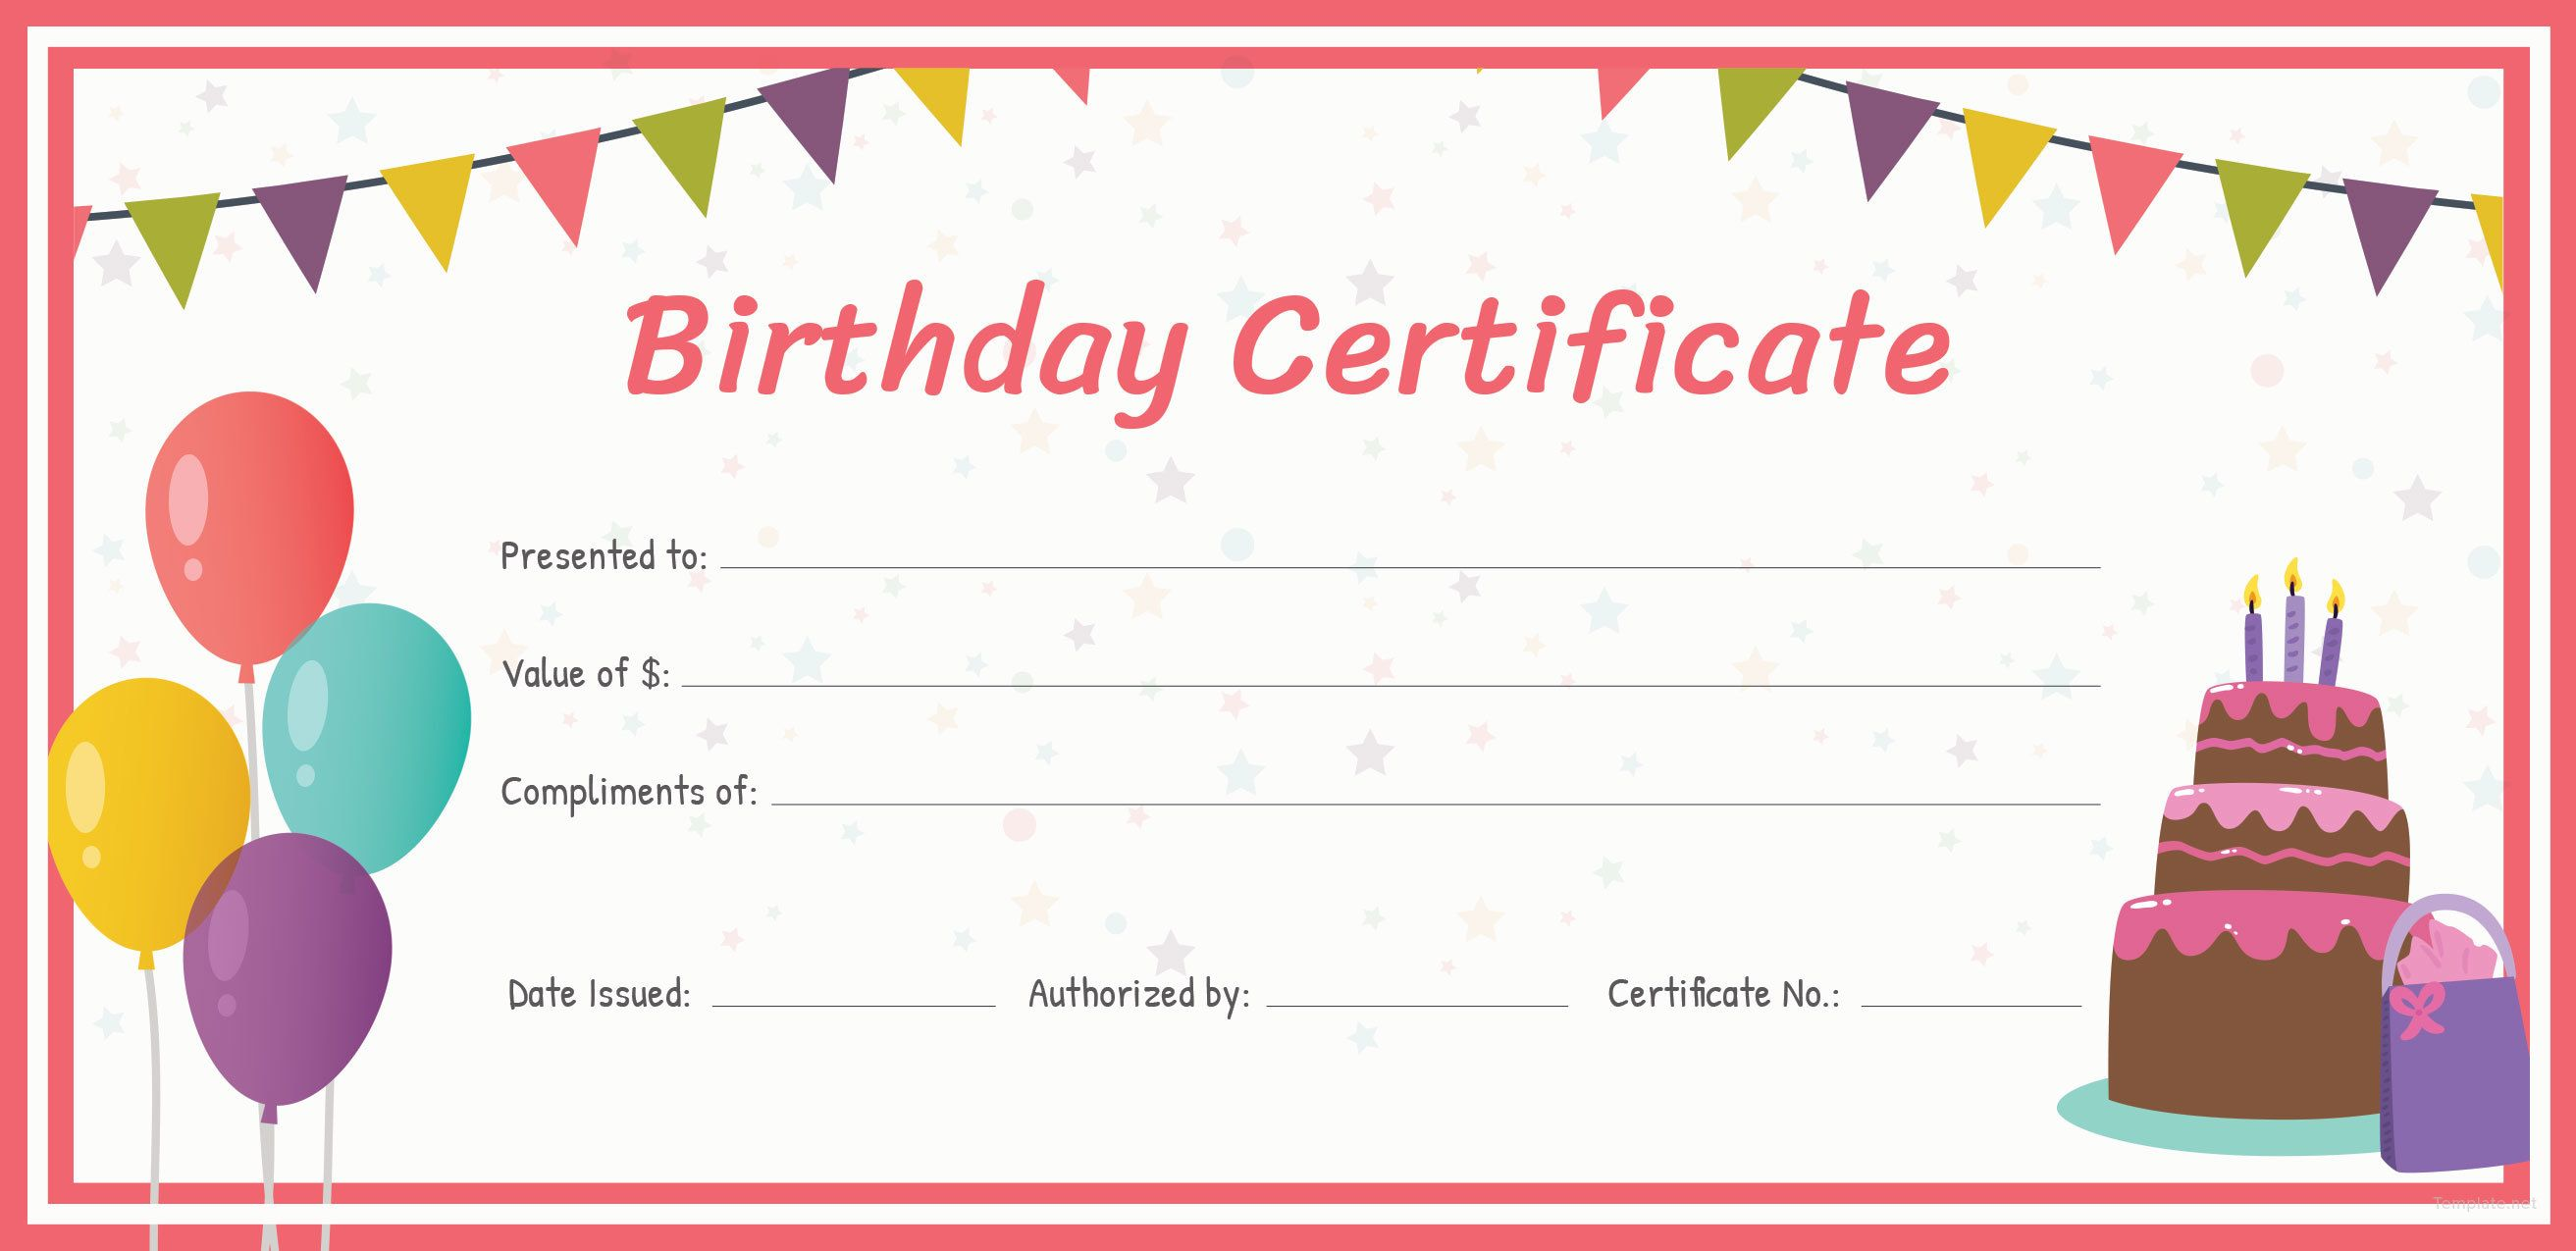 Free birthday gift certificate template in 2020 free